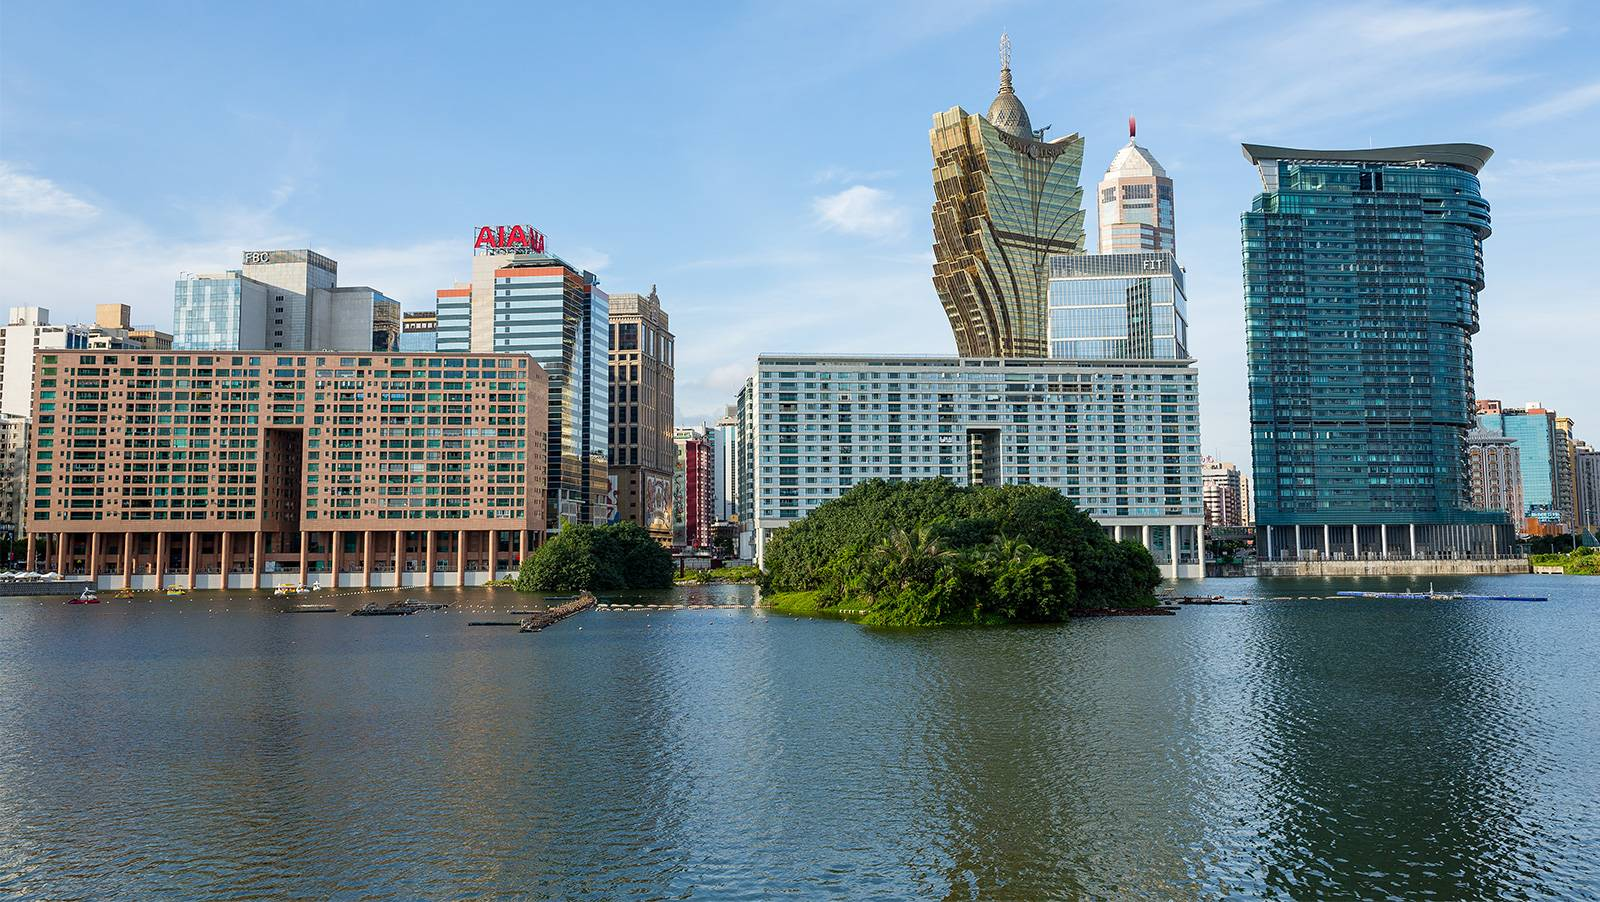 Time is running out on long Macau trade